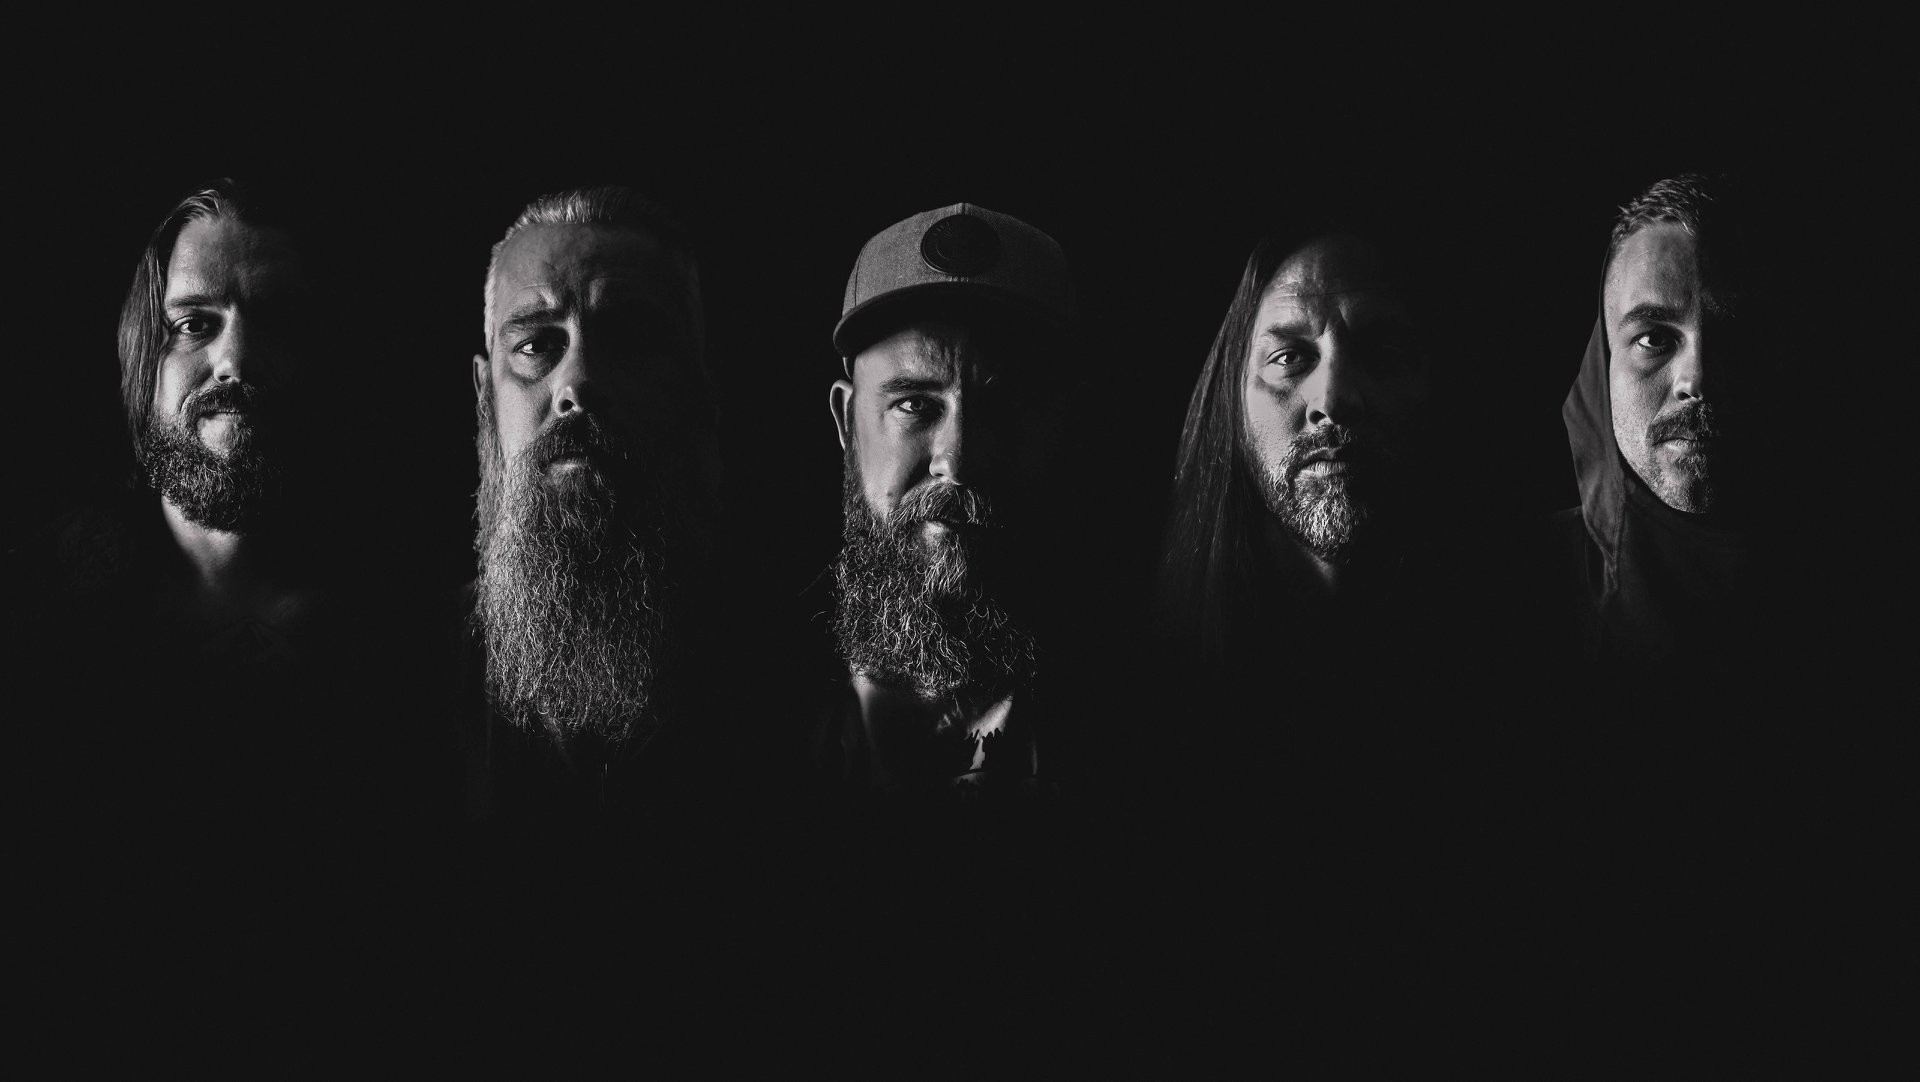 Swedish metal legends In Flames have a date with Orlando in December